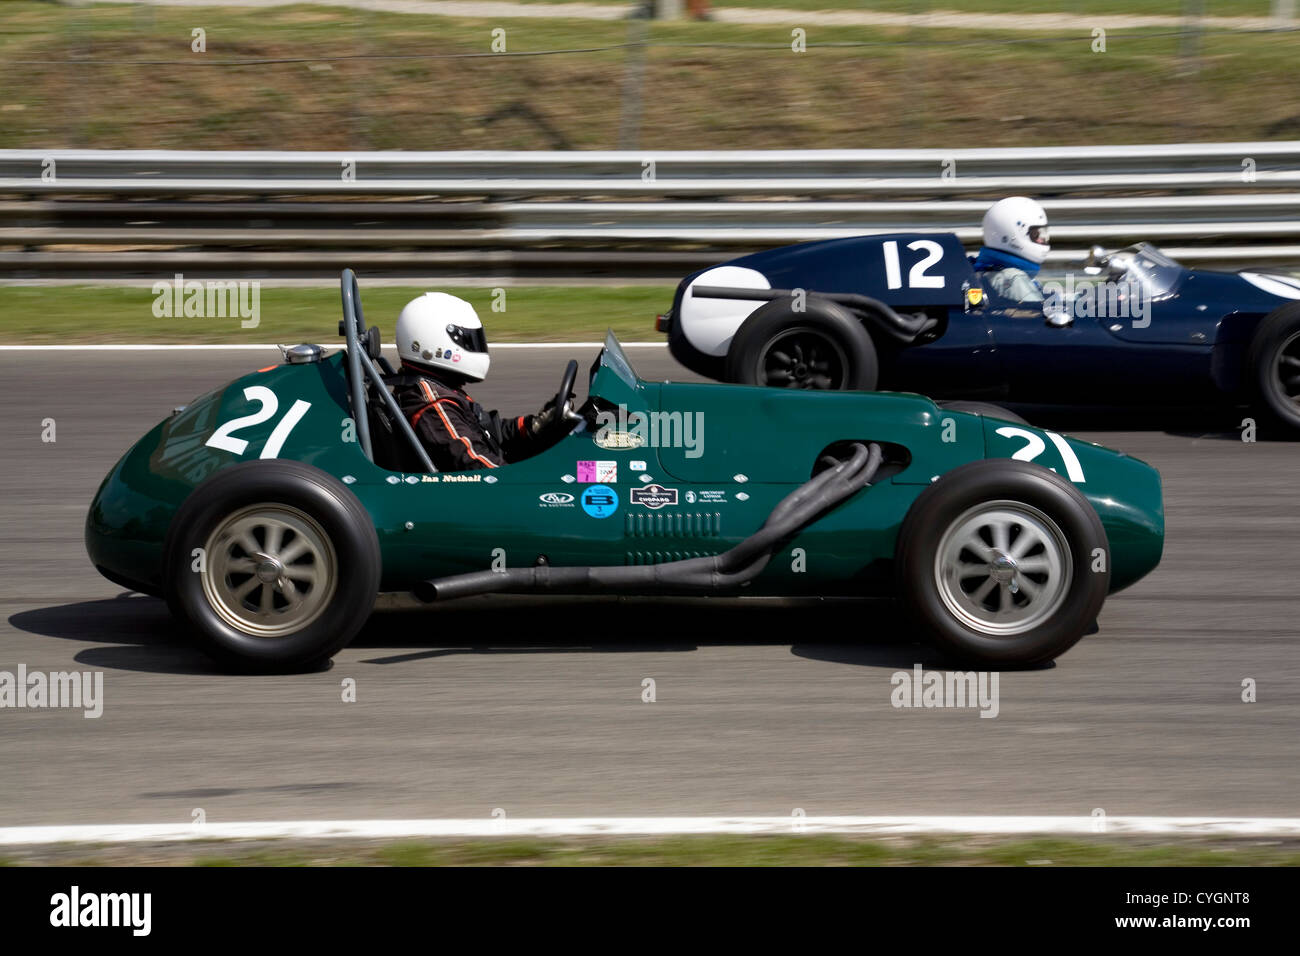 Two Classic Single Seater Racing Cars On A Racing Track Stock